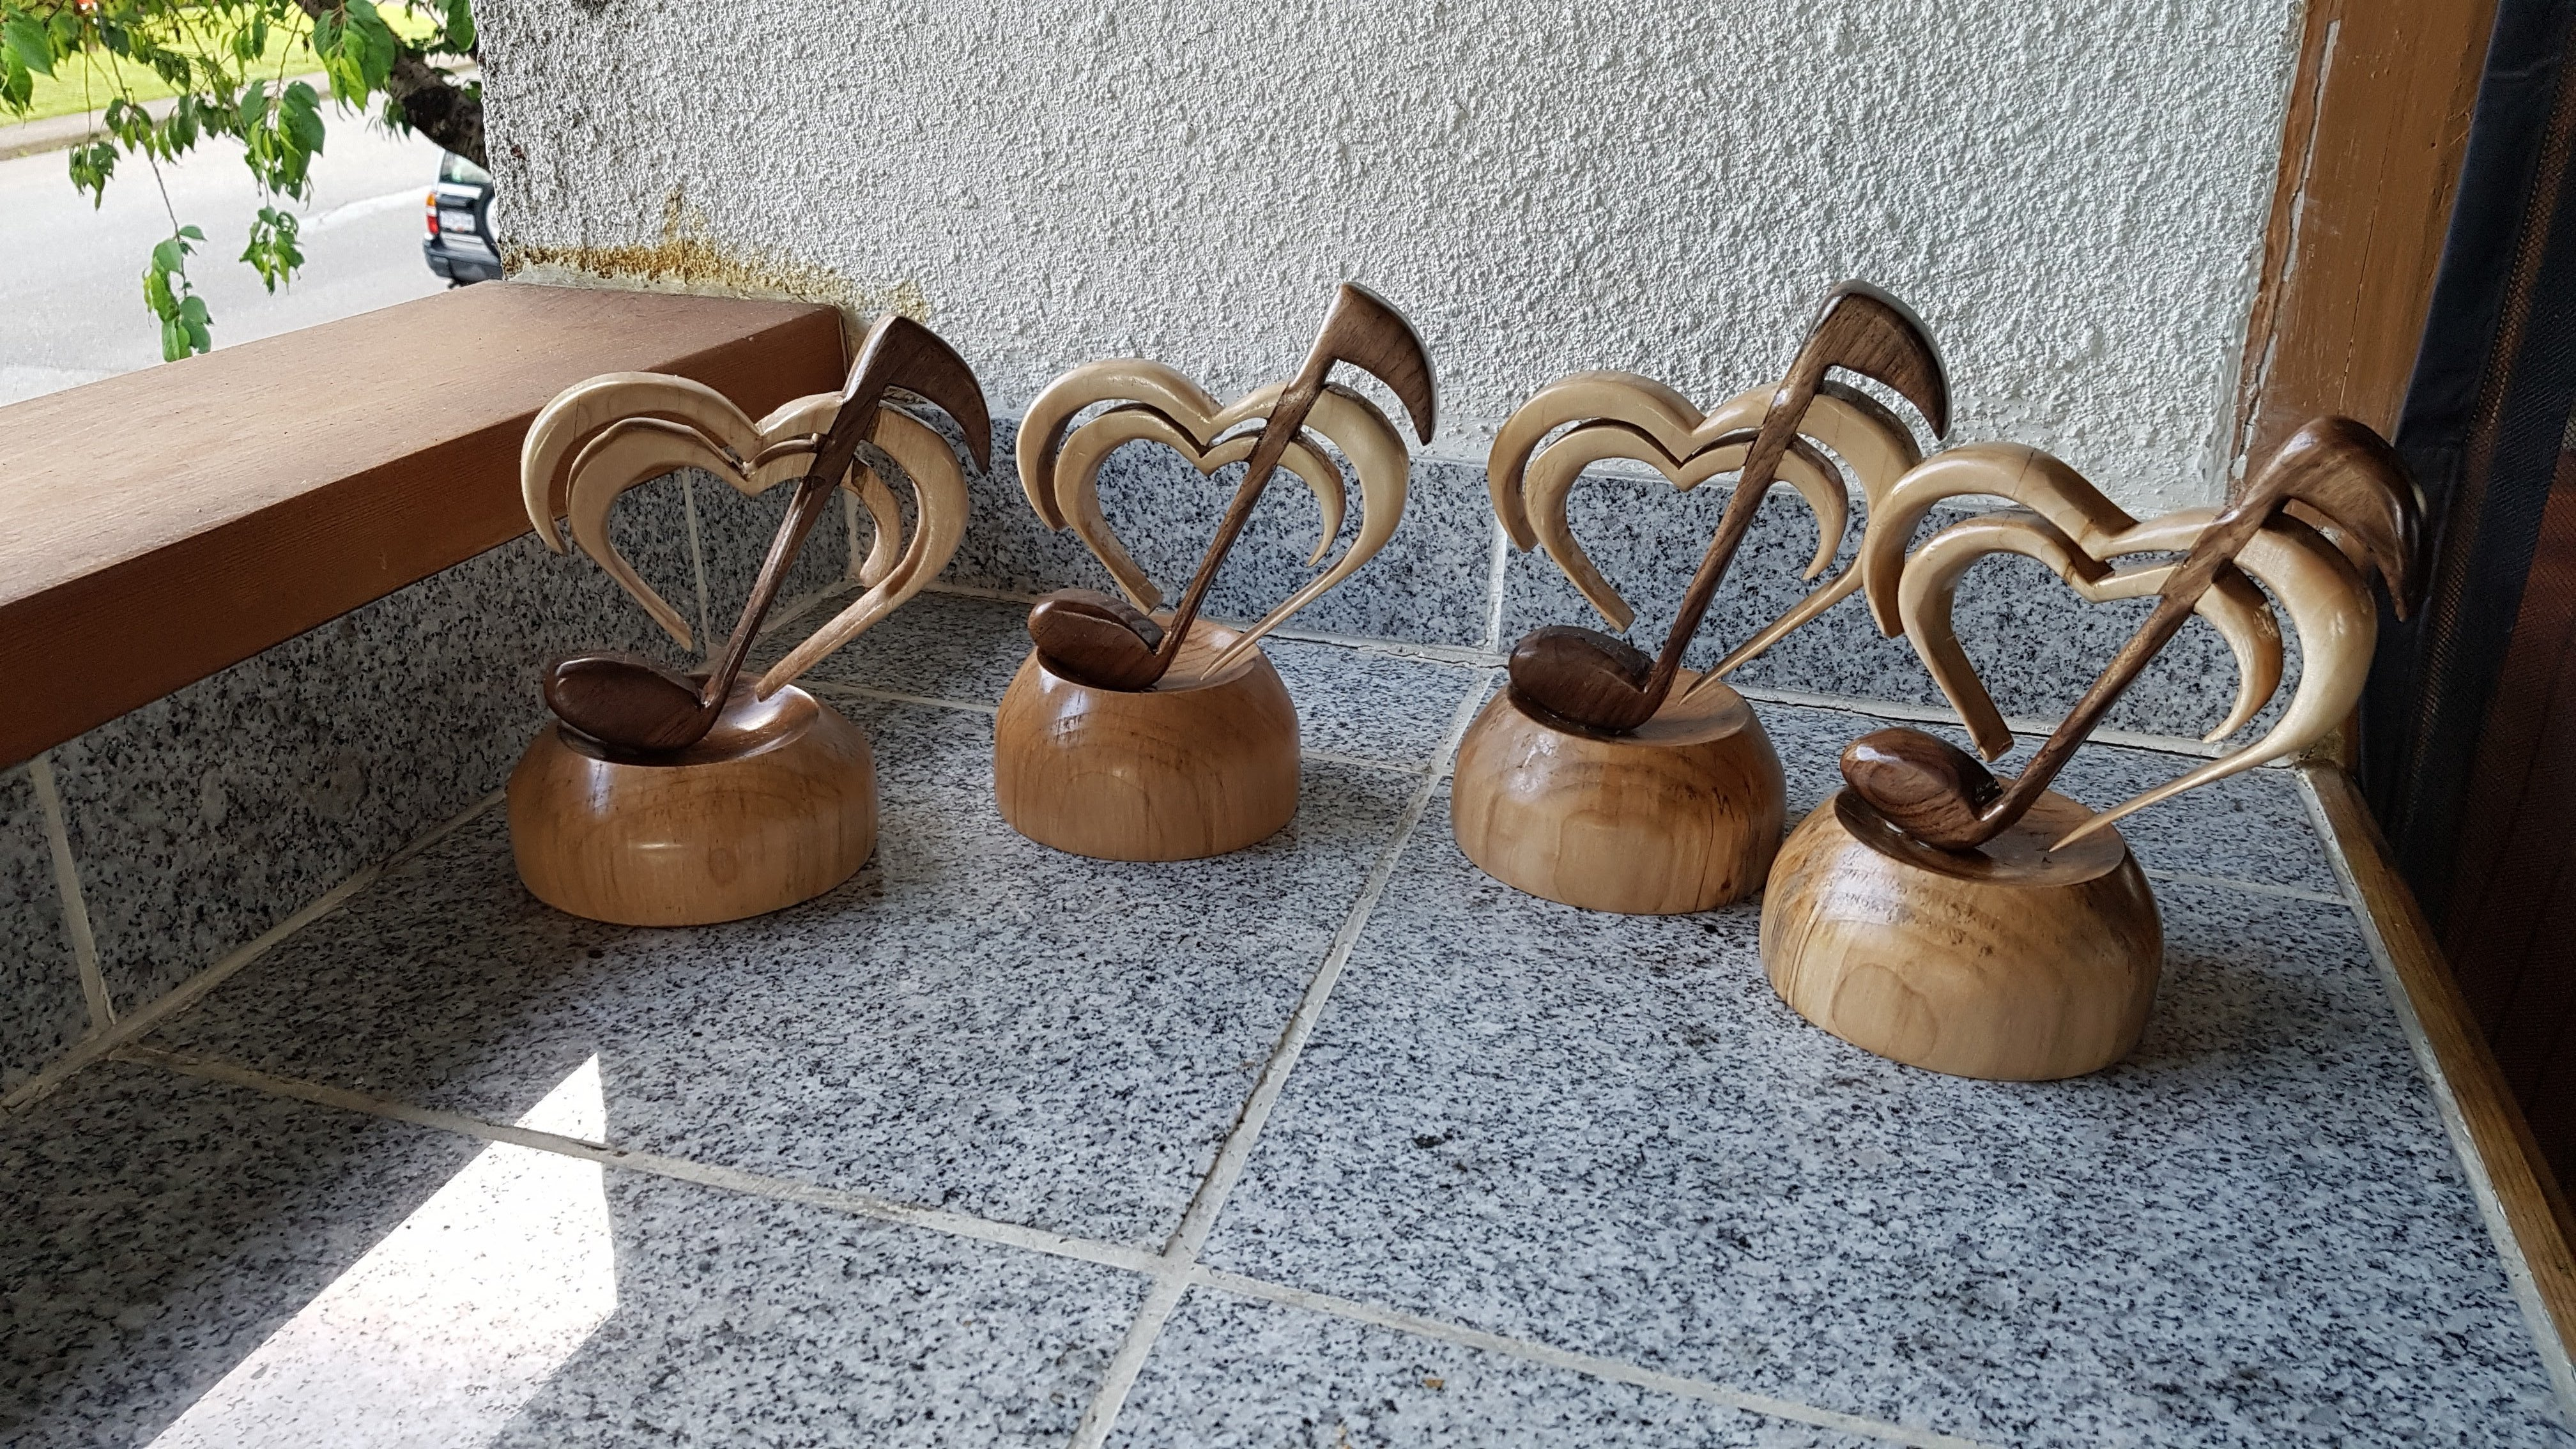 Completed music trophies